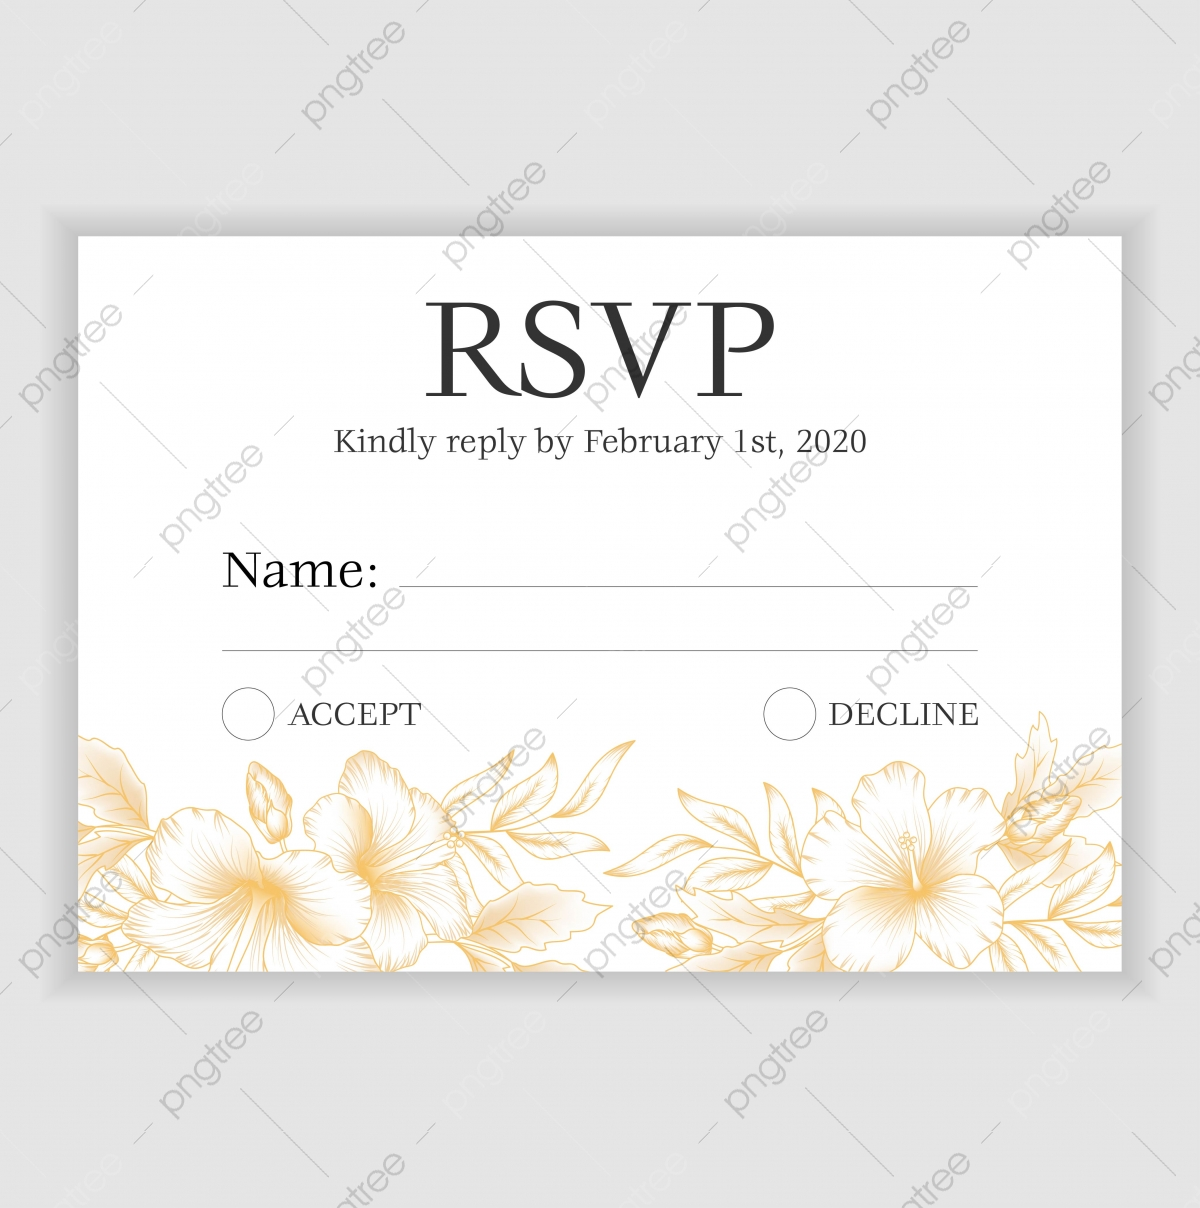 Rsvp Card Template from png.pngtree.com